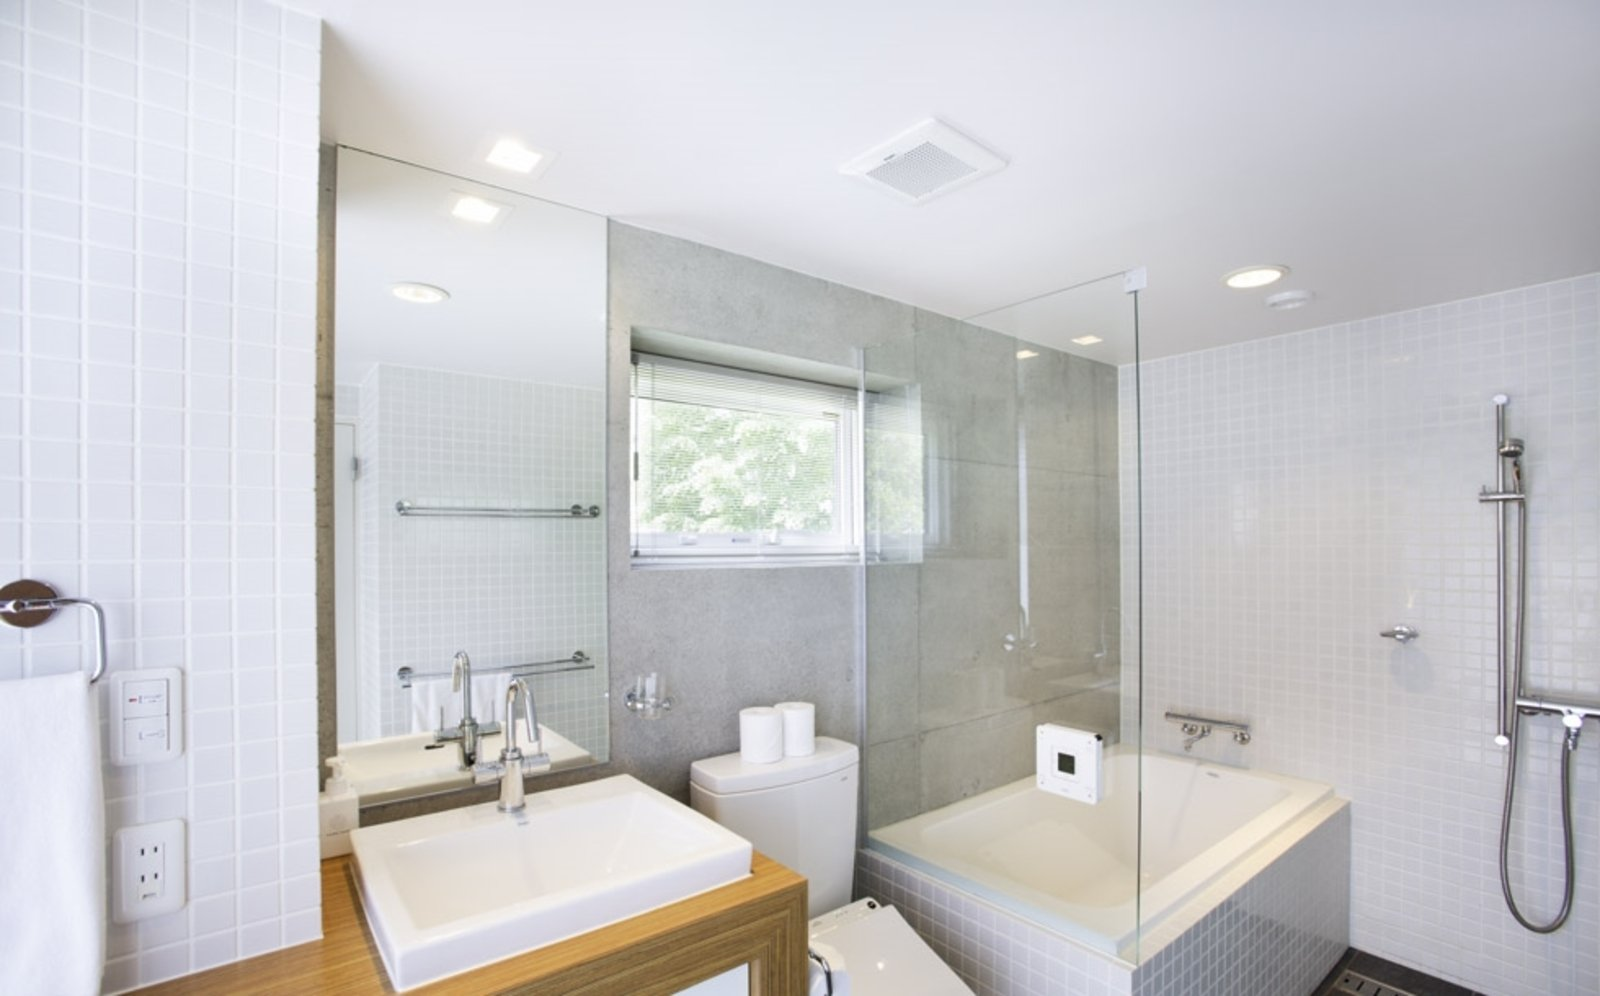 Kon m 3bdr house bathroom large